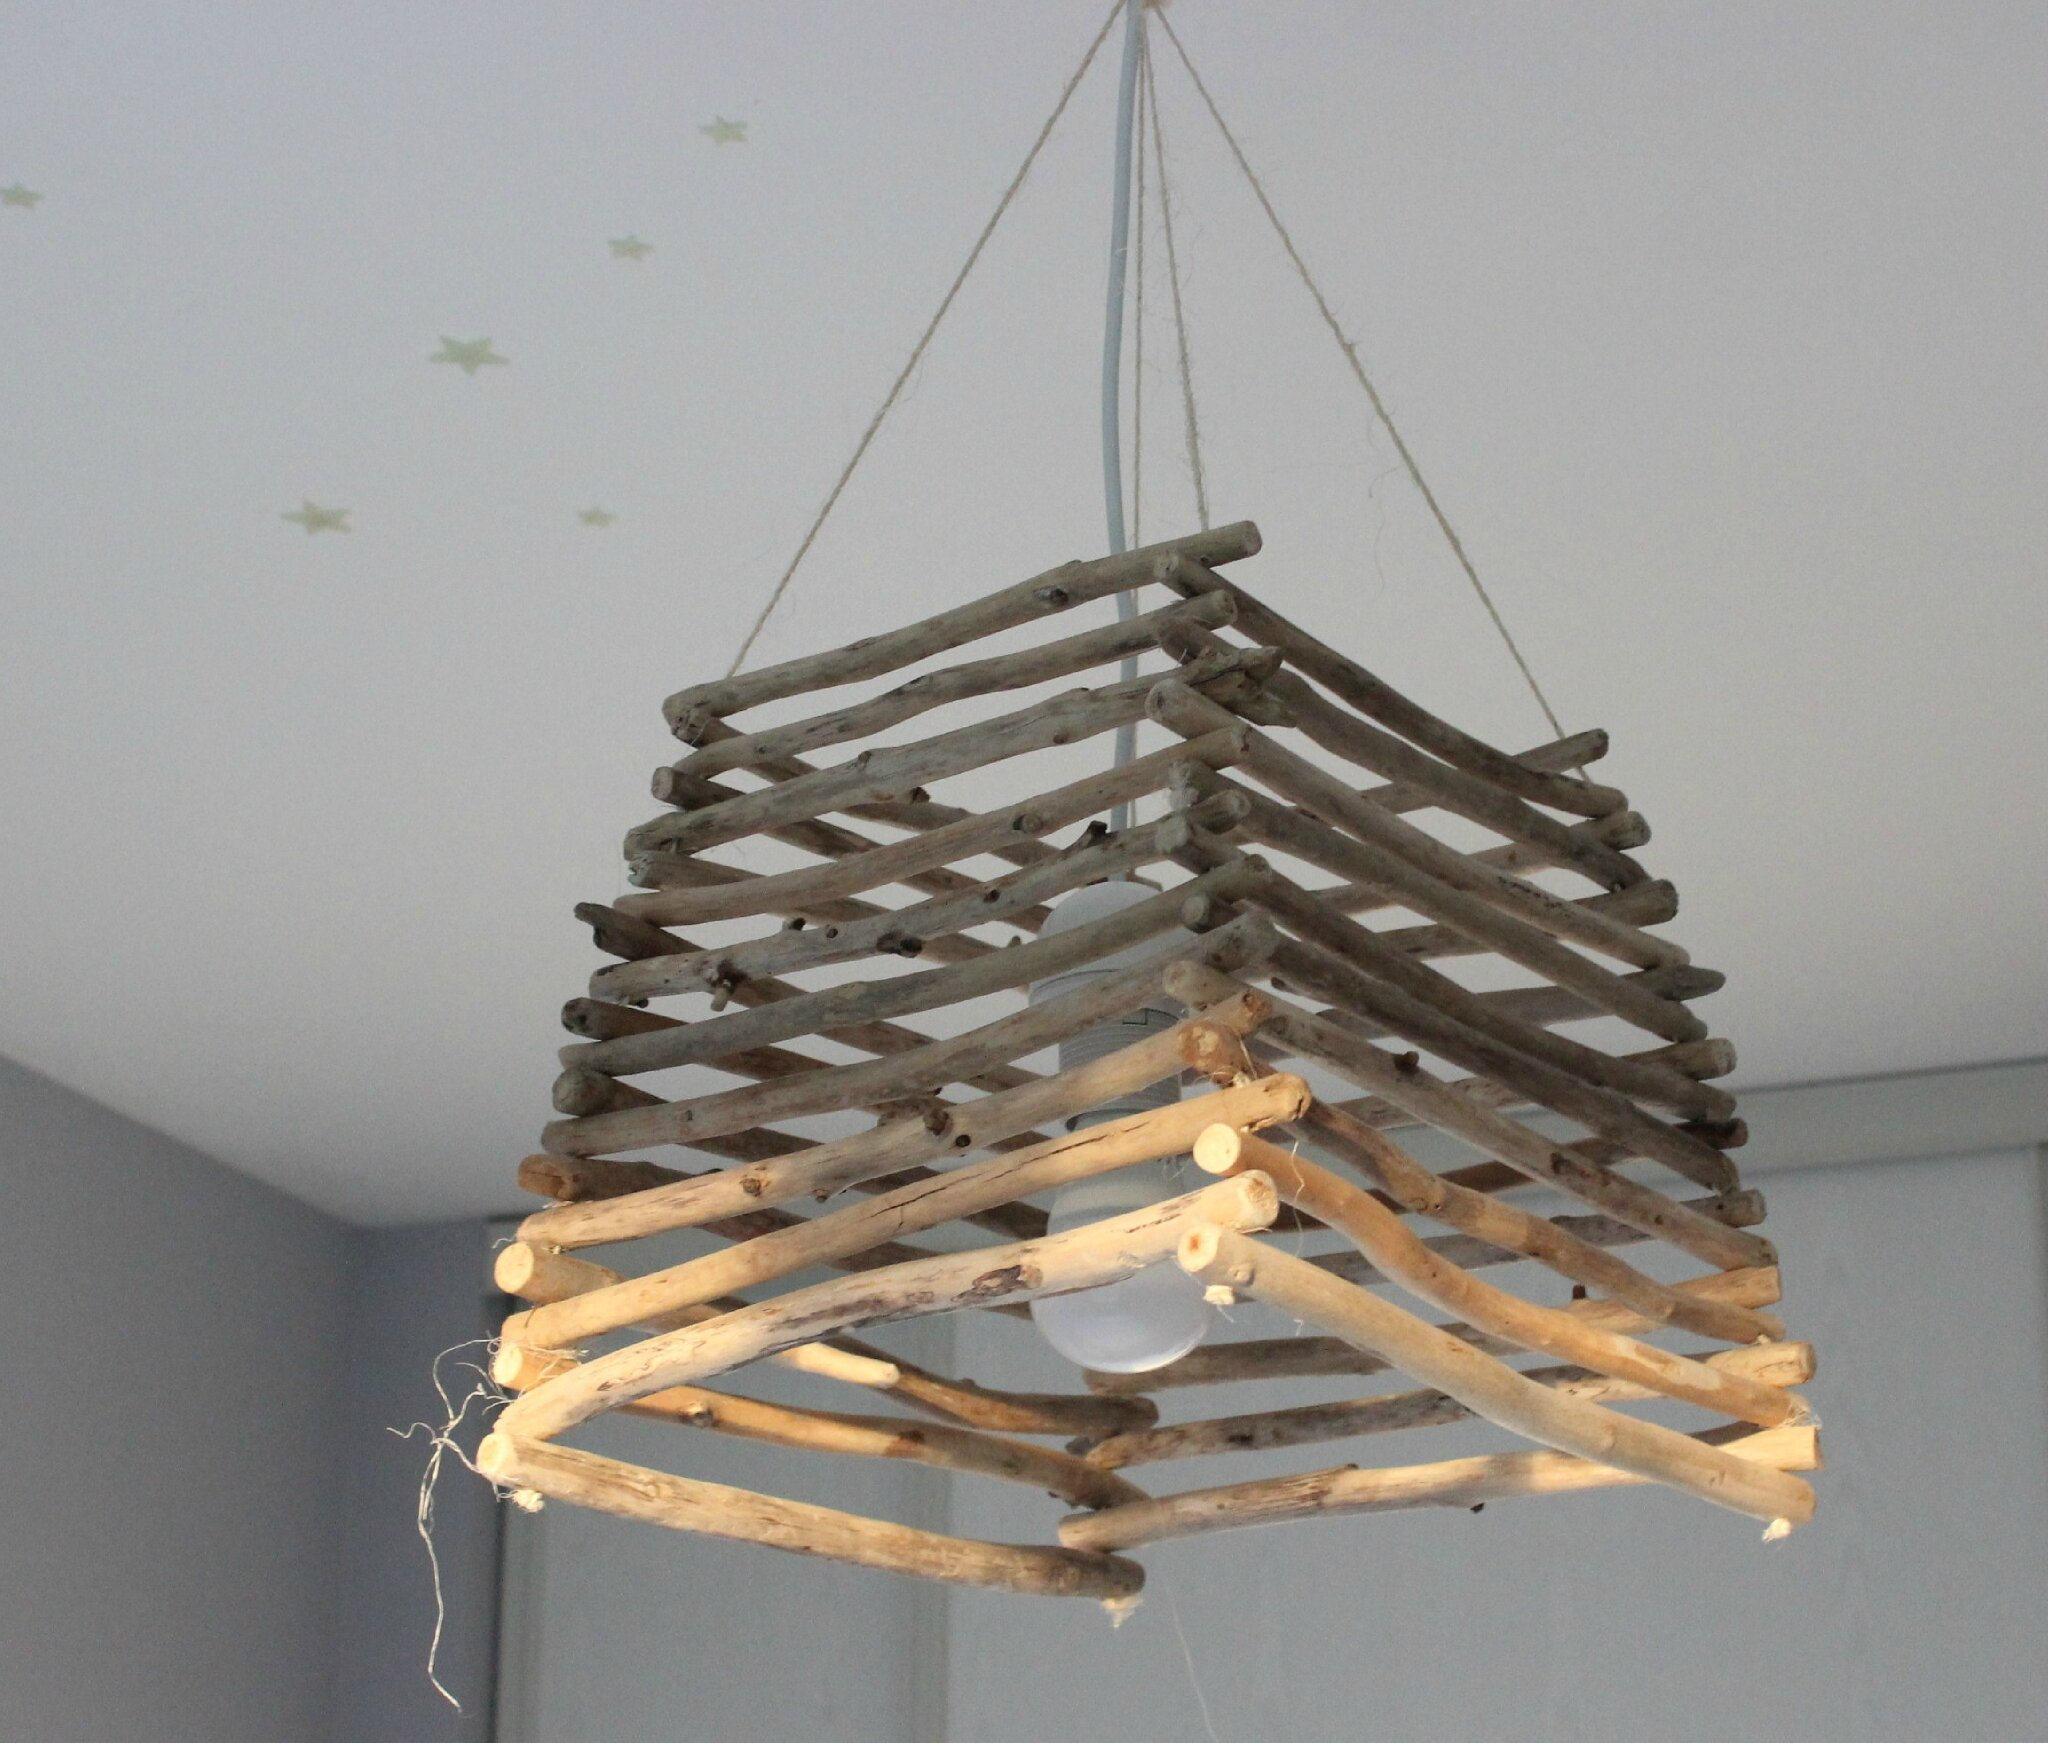 Creation en bois flott for Mobile en bois flotte